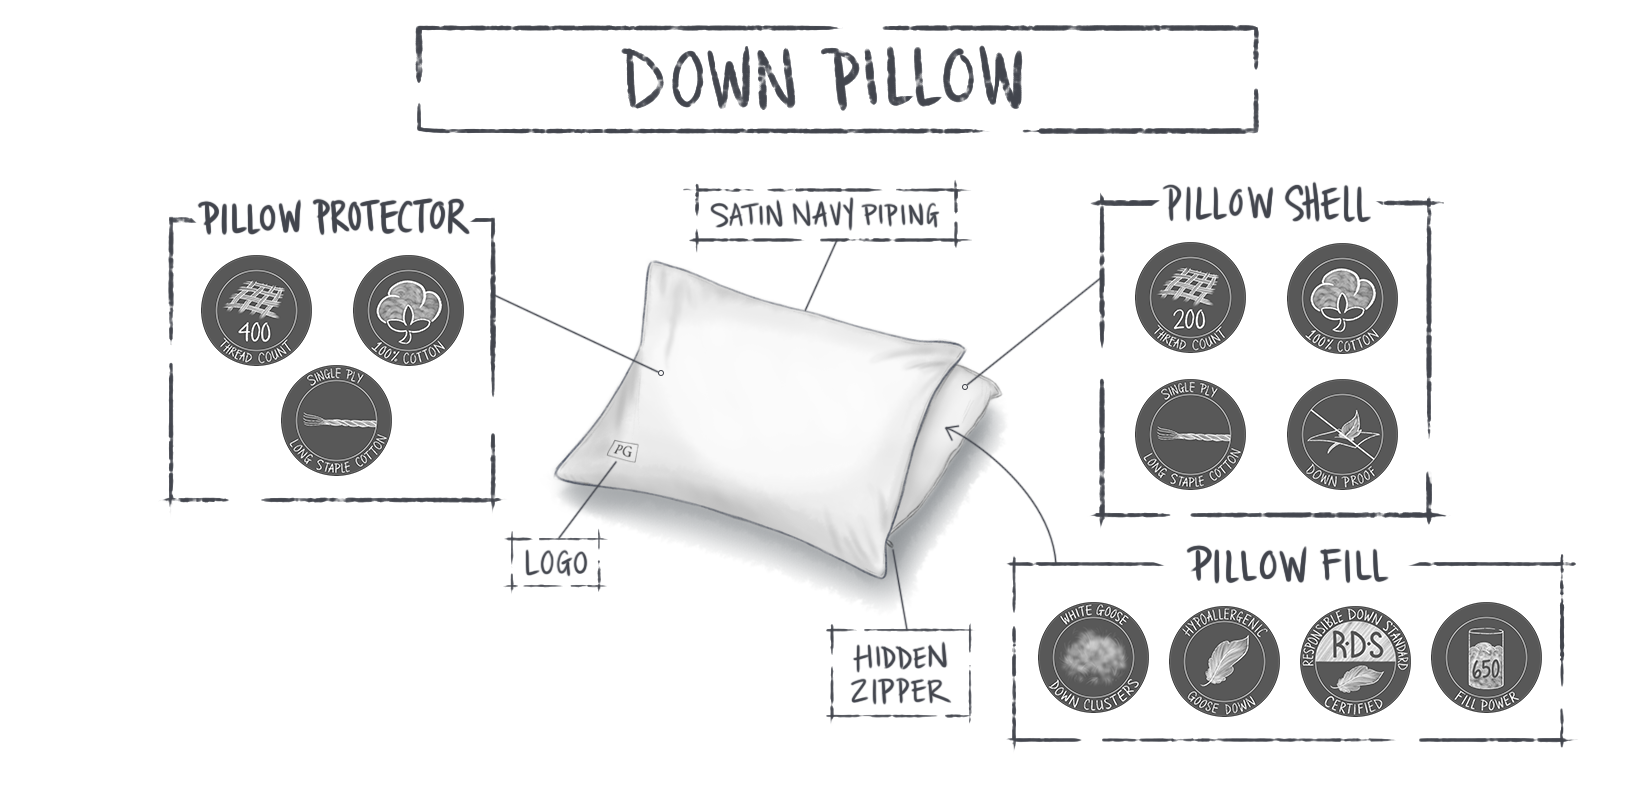 PG_Down Pillow infographic_final_Mar 18 2018_Loraine Yow